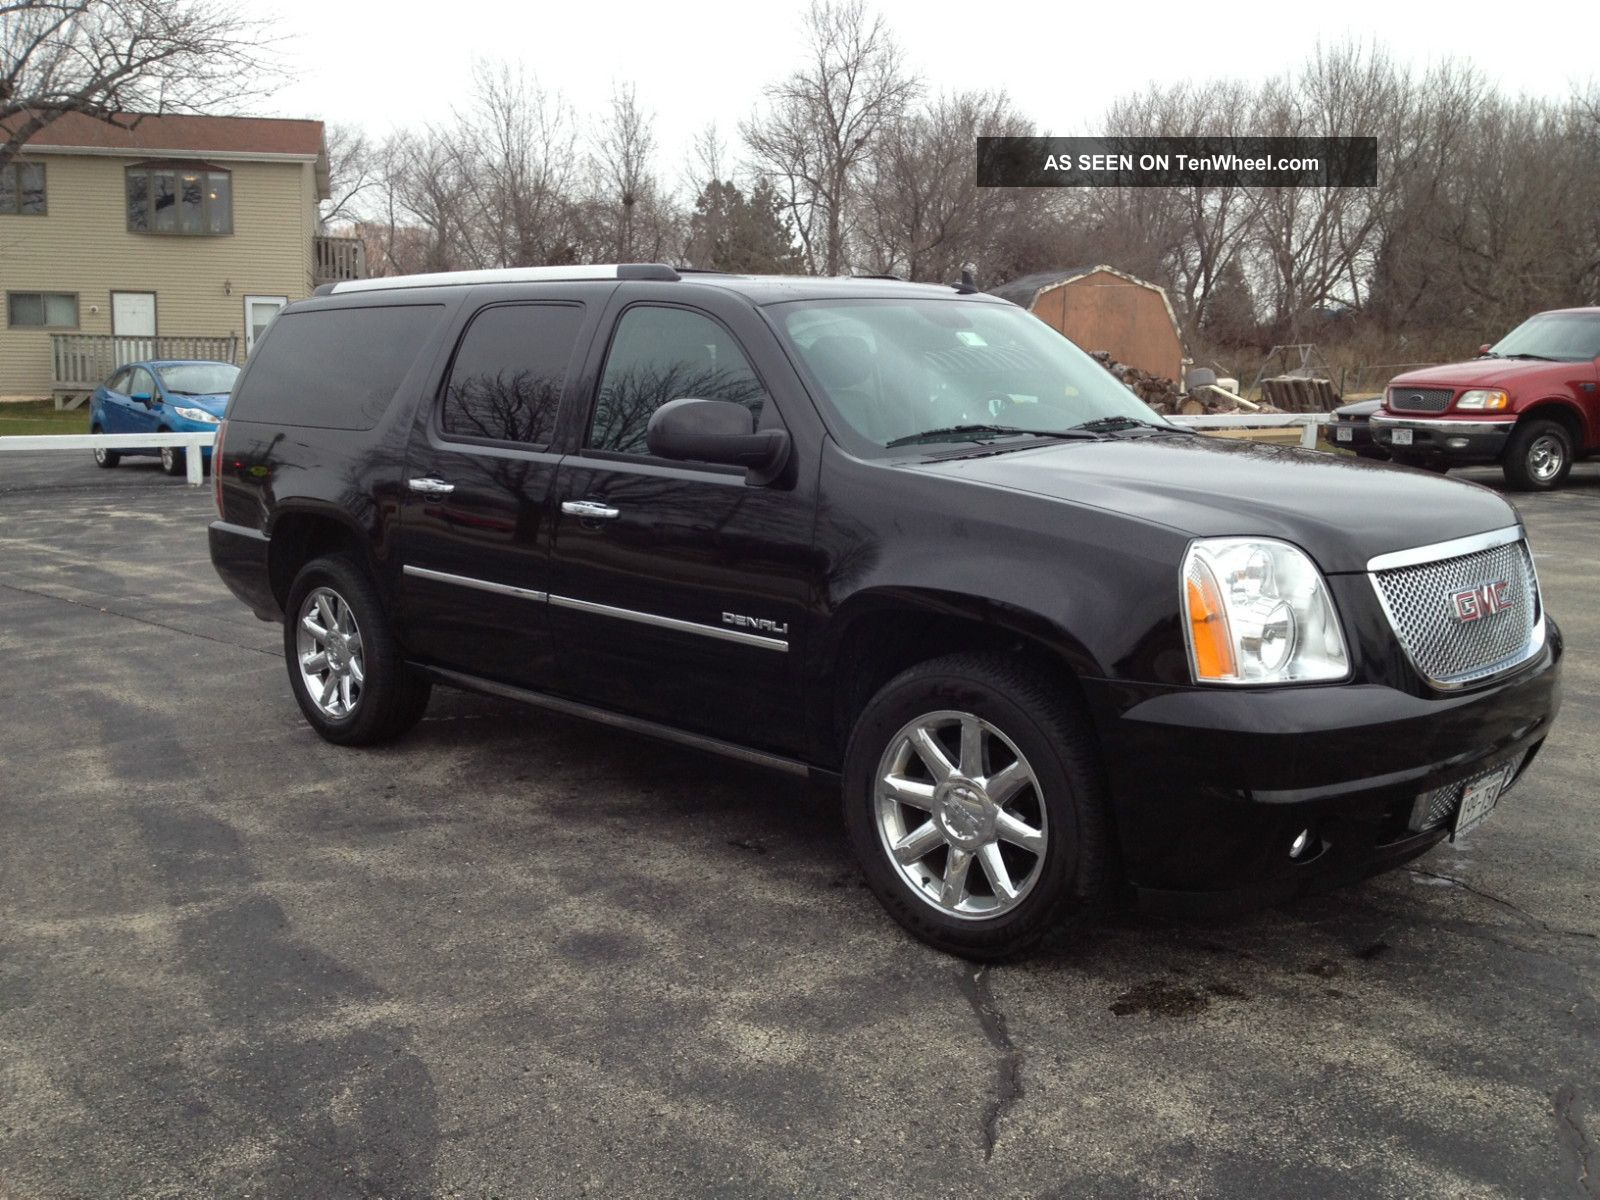 Service Manual 2011 Gmc Yukon Xl 2500 Crossbar Installation Service Manual 2008 Gmc Yukon Xl